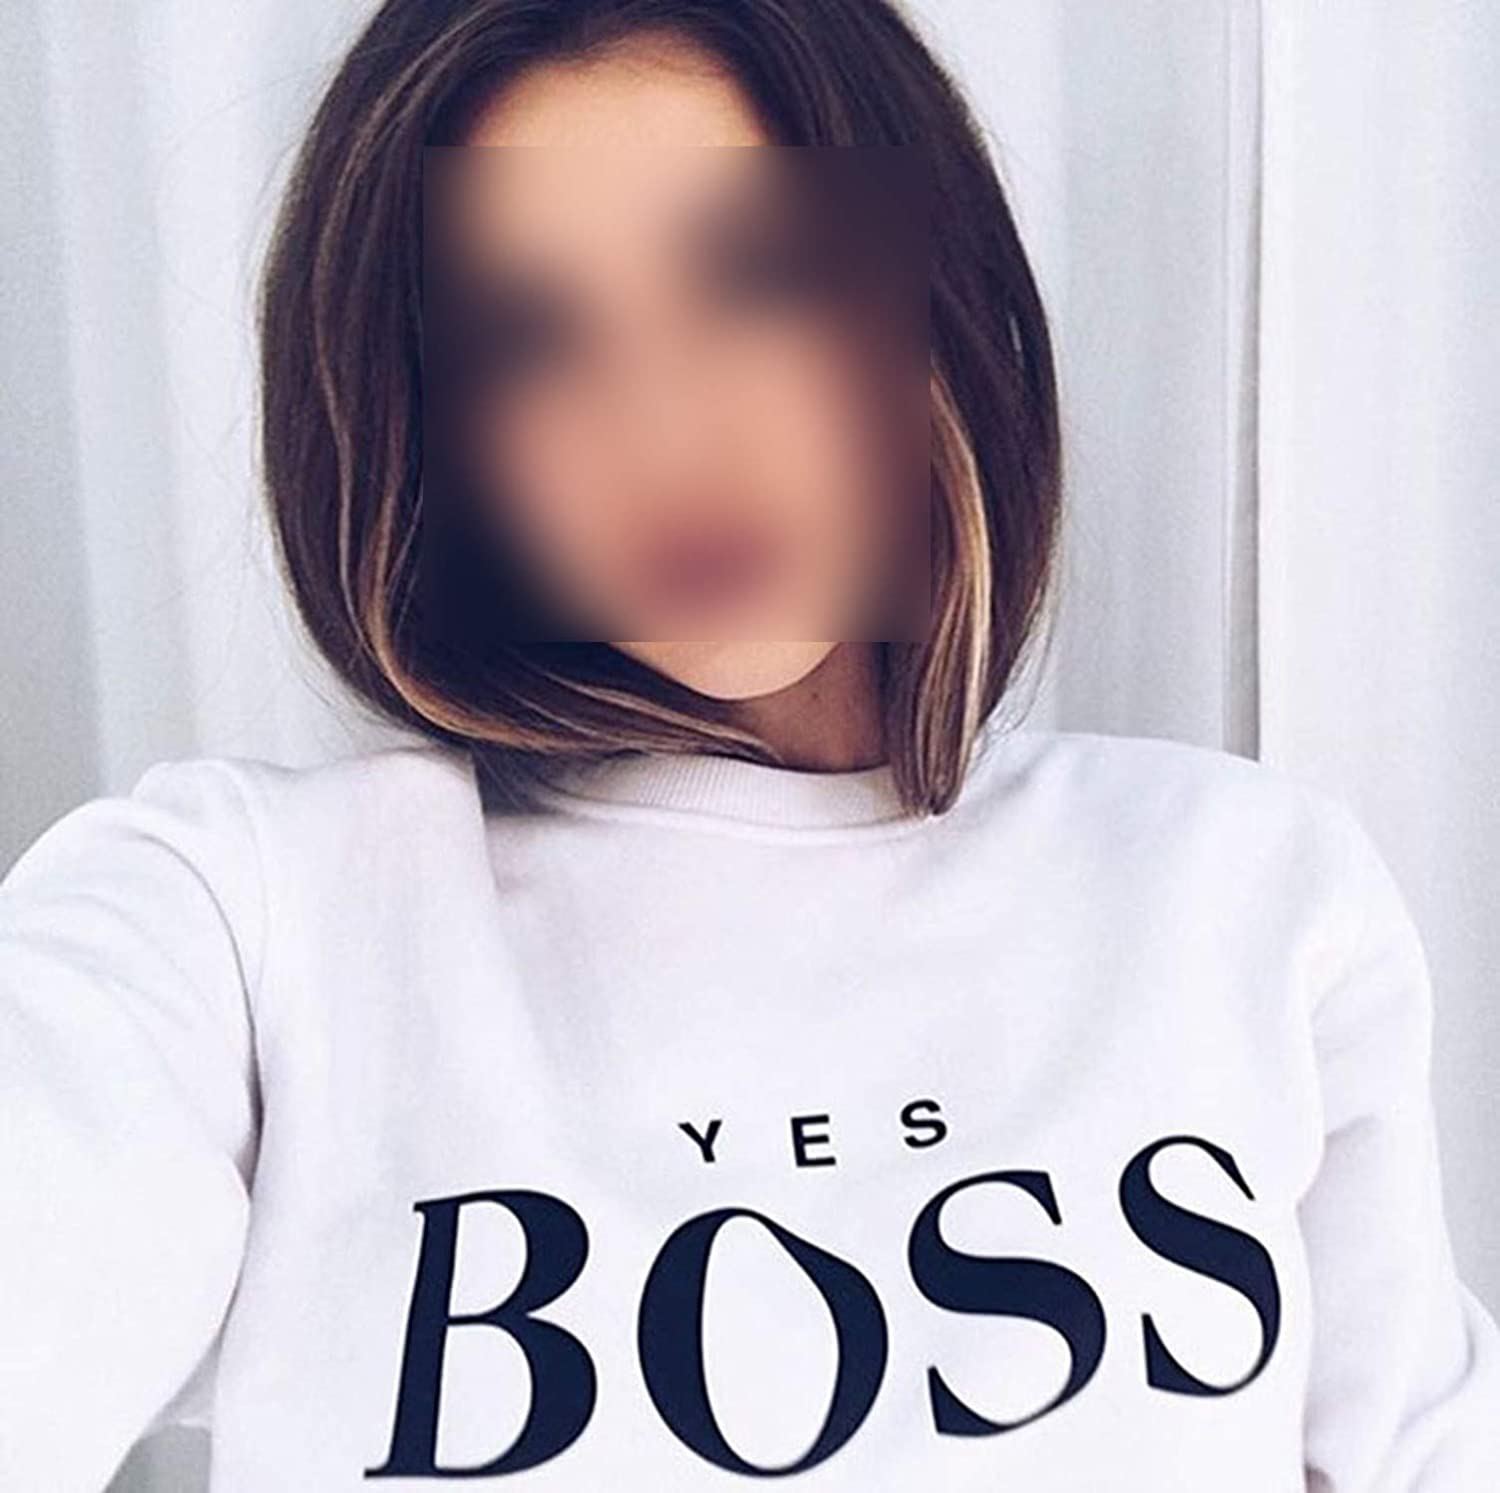 Yes Boss Letter Hoodies Cotton Basic Student BF Style Pullovers Sports Loose Tops Long Sleeve Sweatshirts